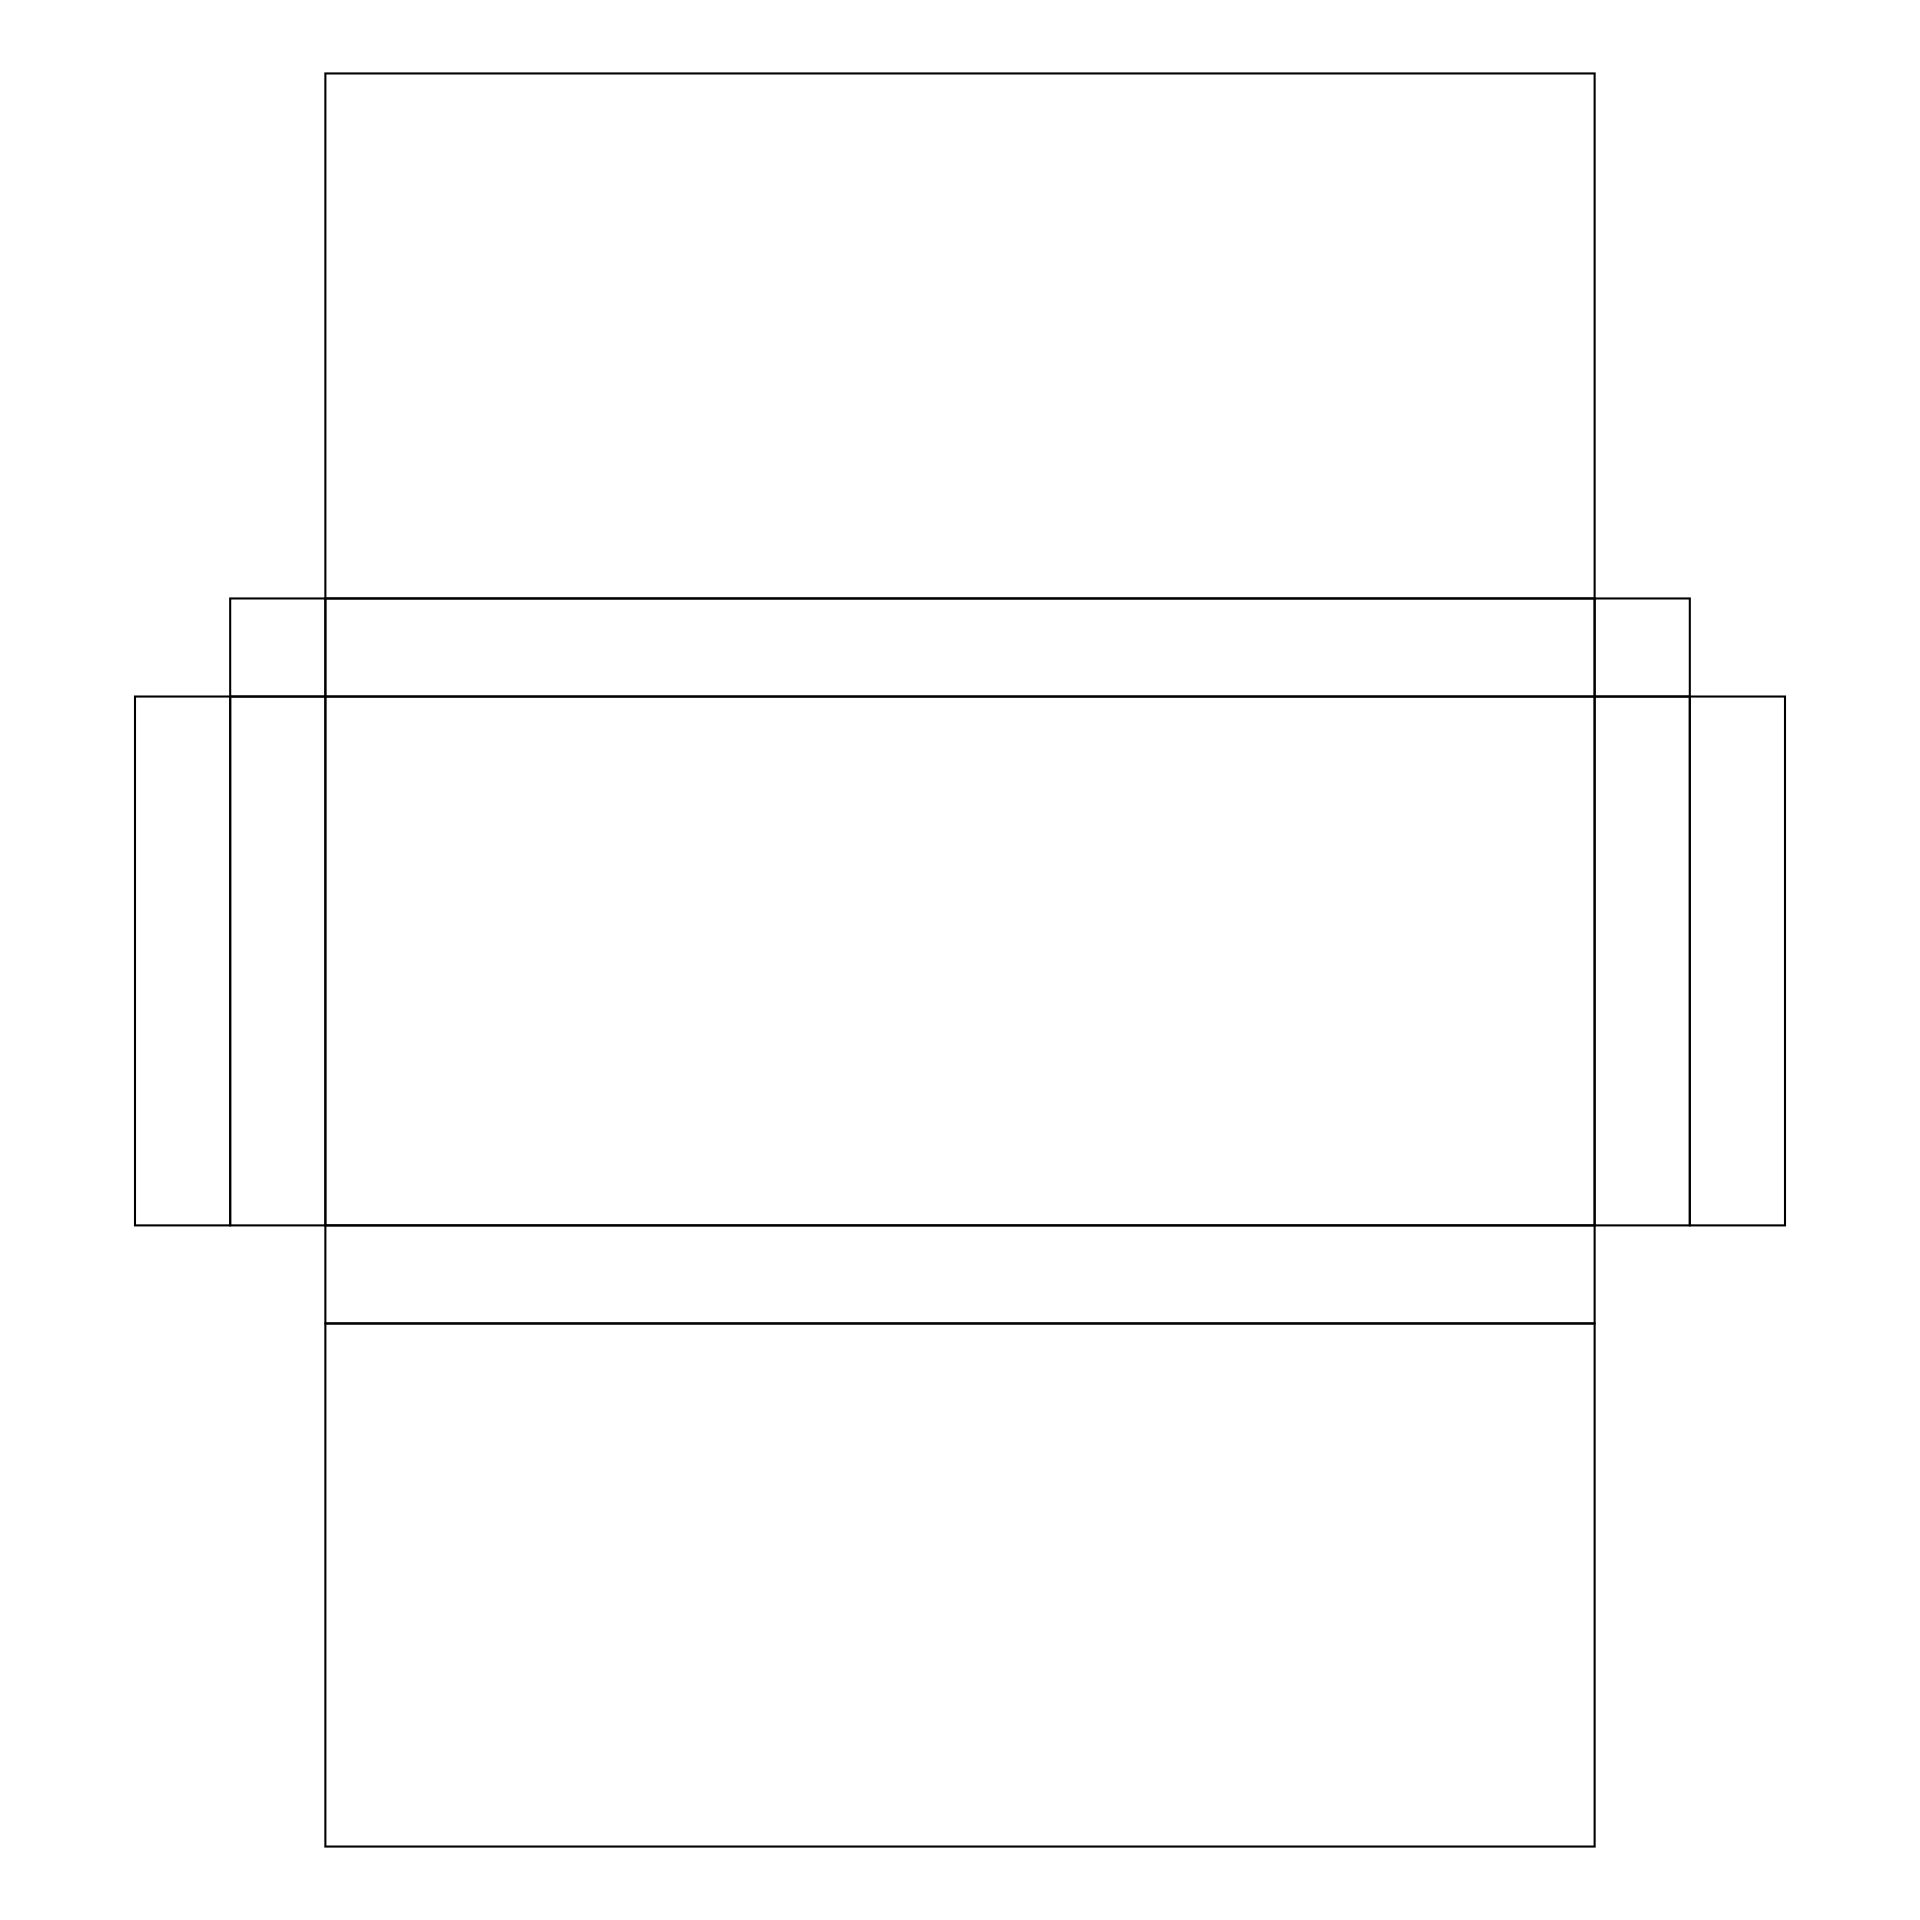 Candy Bar Wrapper Template - Hershey Candy Bar Wrapper Blank Template ...